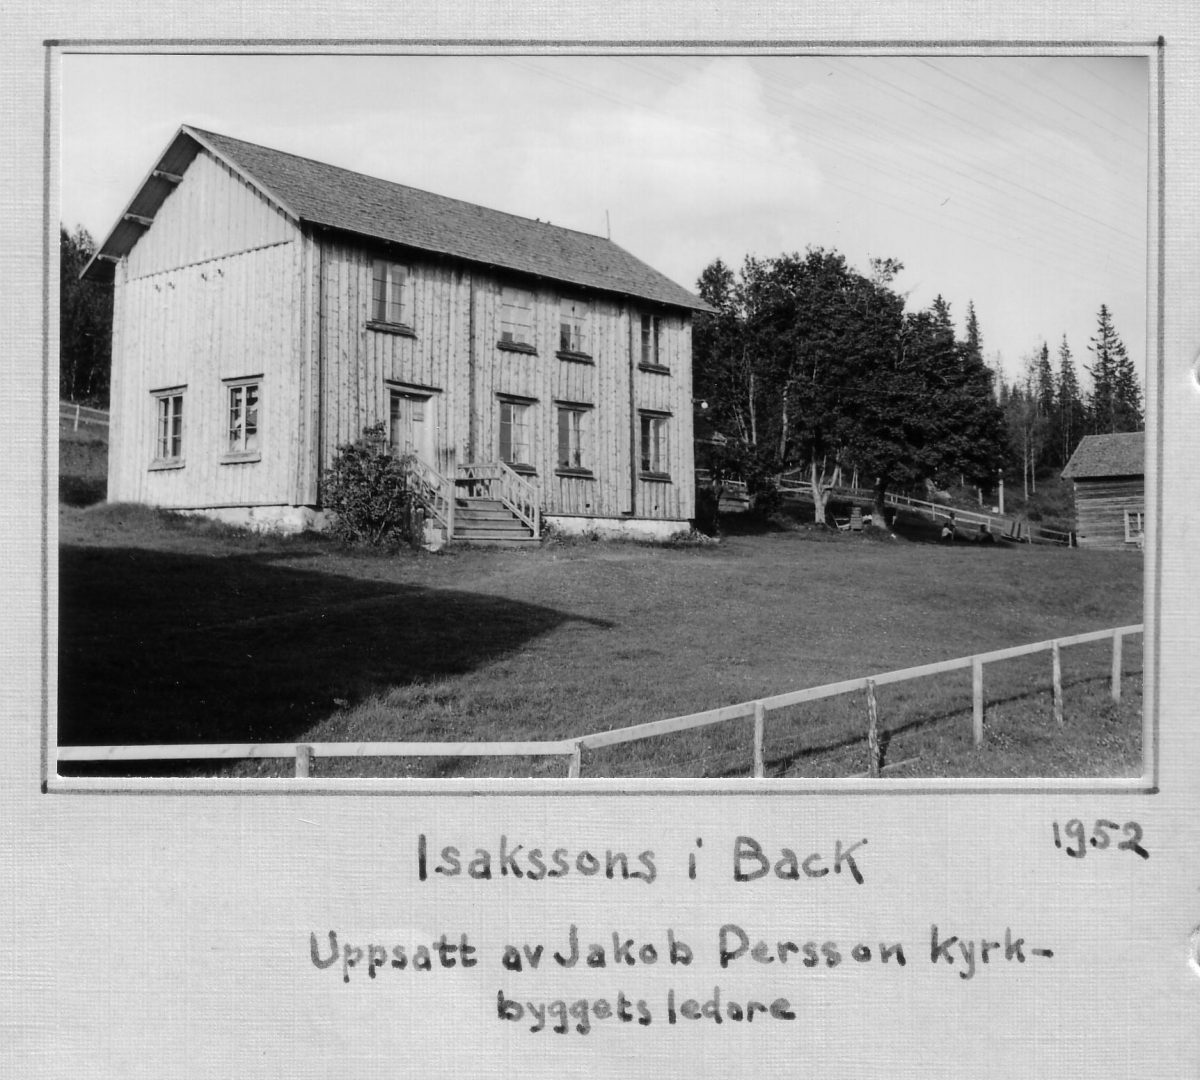 S.49 Isakssons i Back 1952